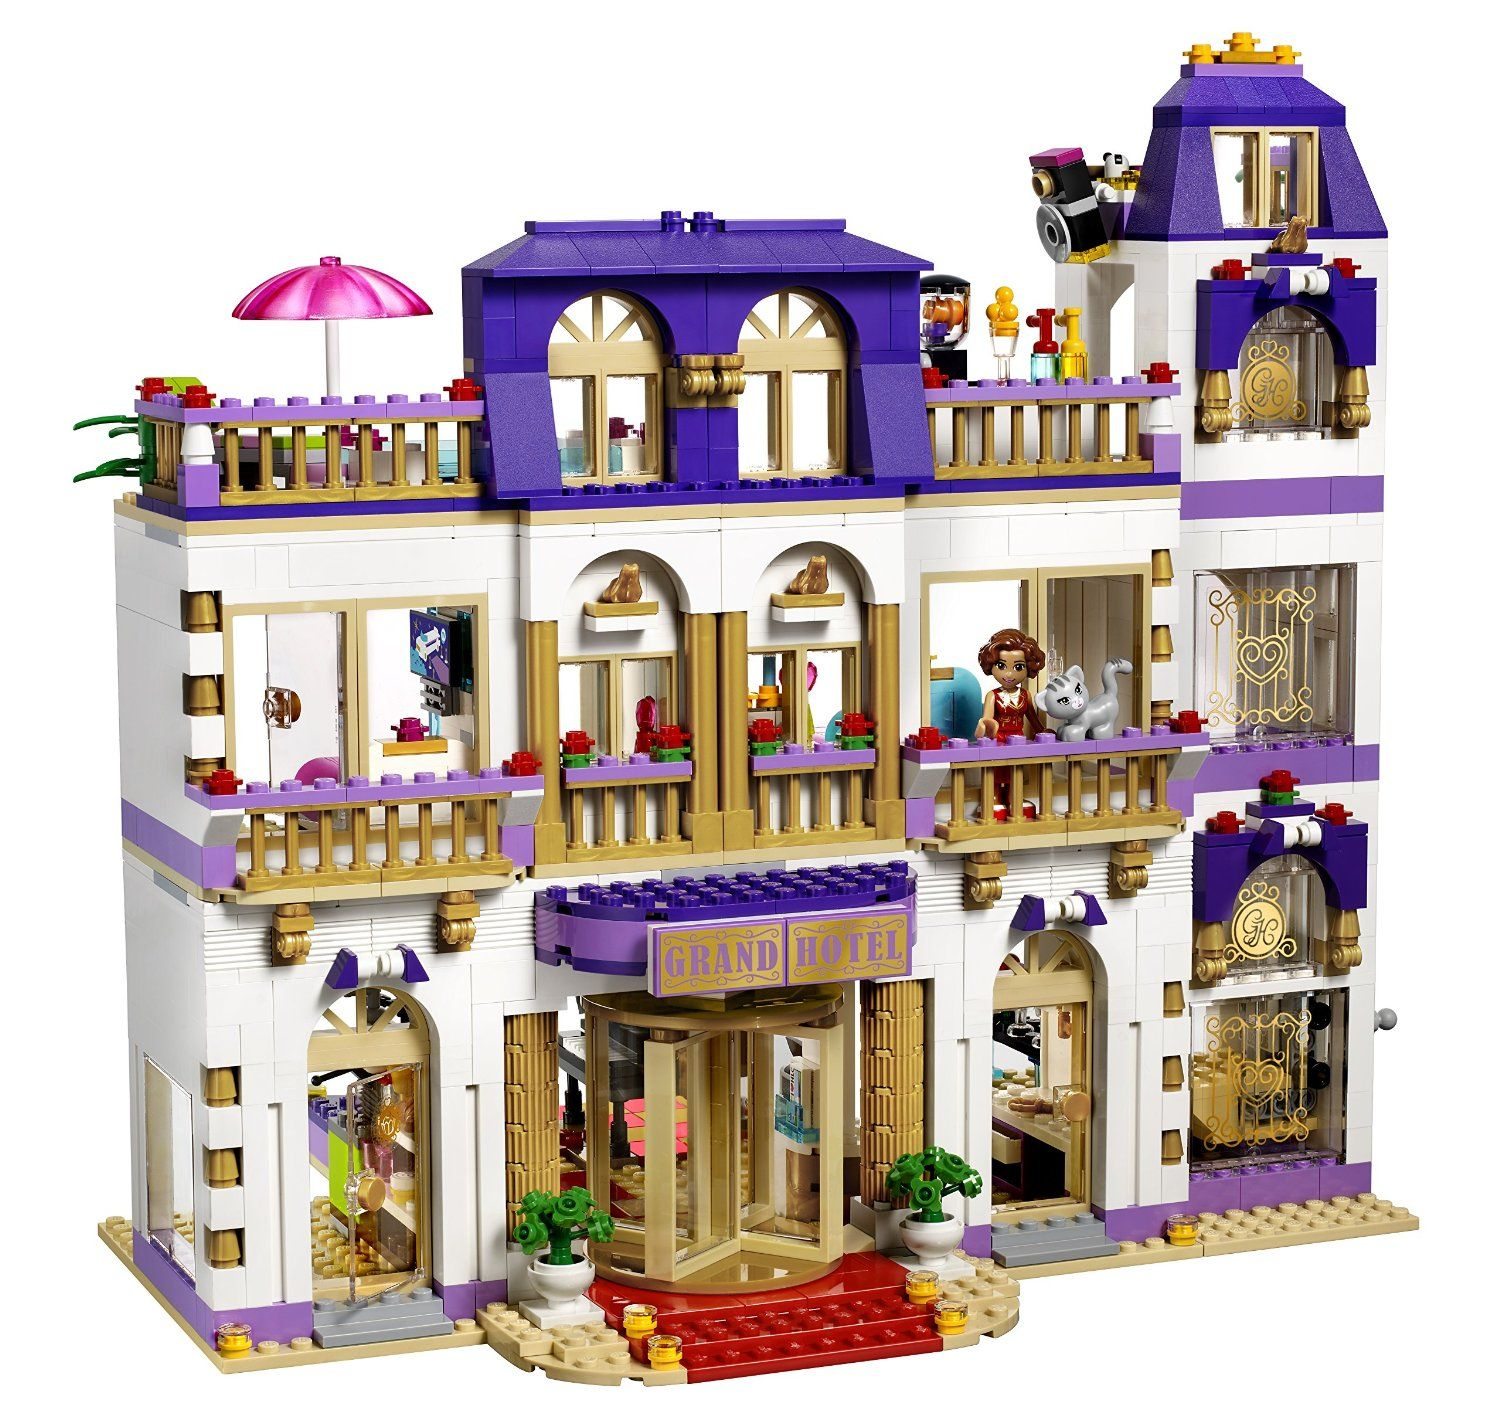 Amazon LEGO Friends Heartlake Grand Hotel Building Kit